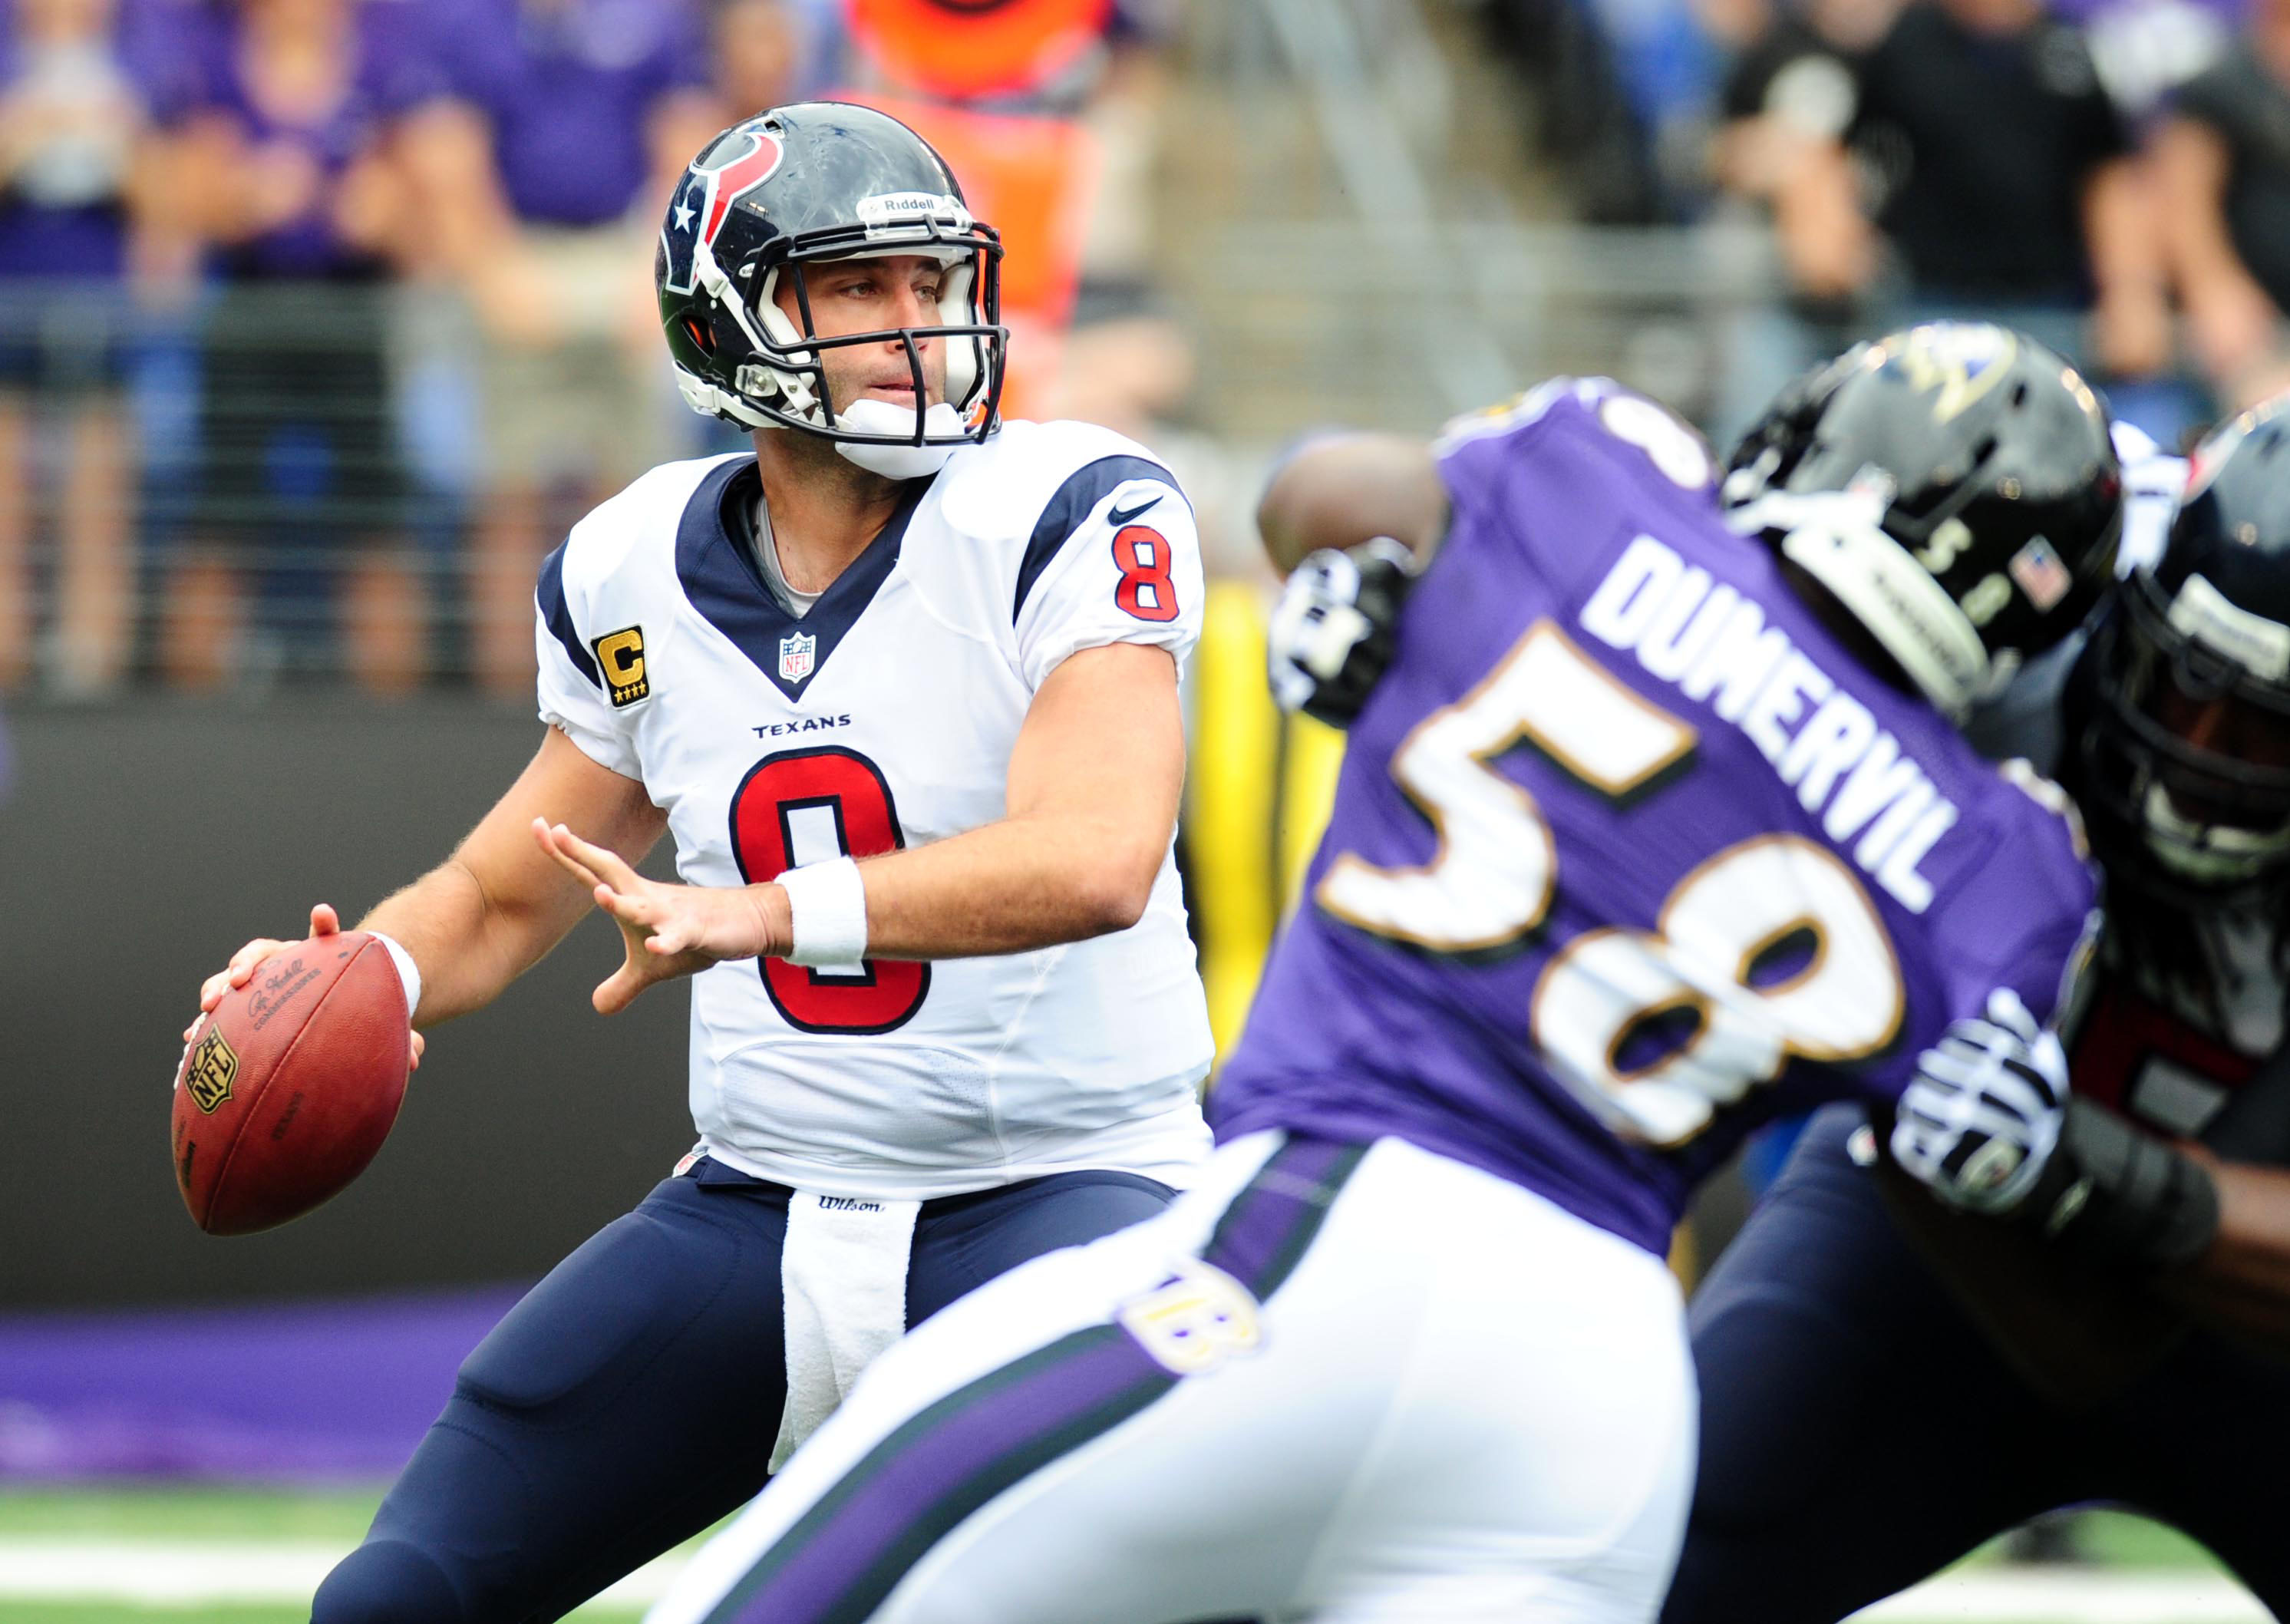 At least Schaub doesn't have to run from the Ravens front seven any more. That's a plus.